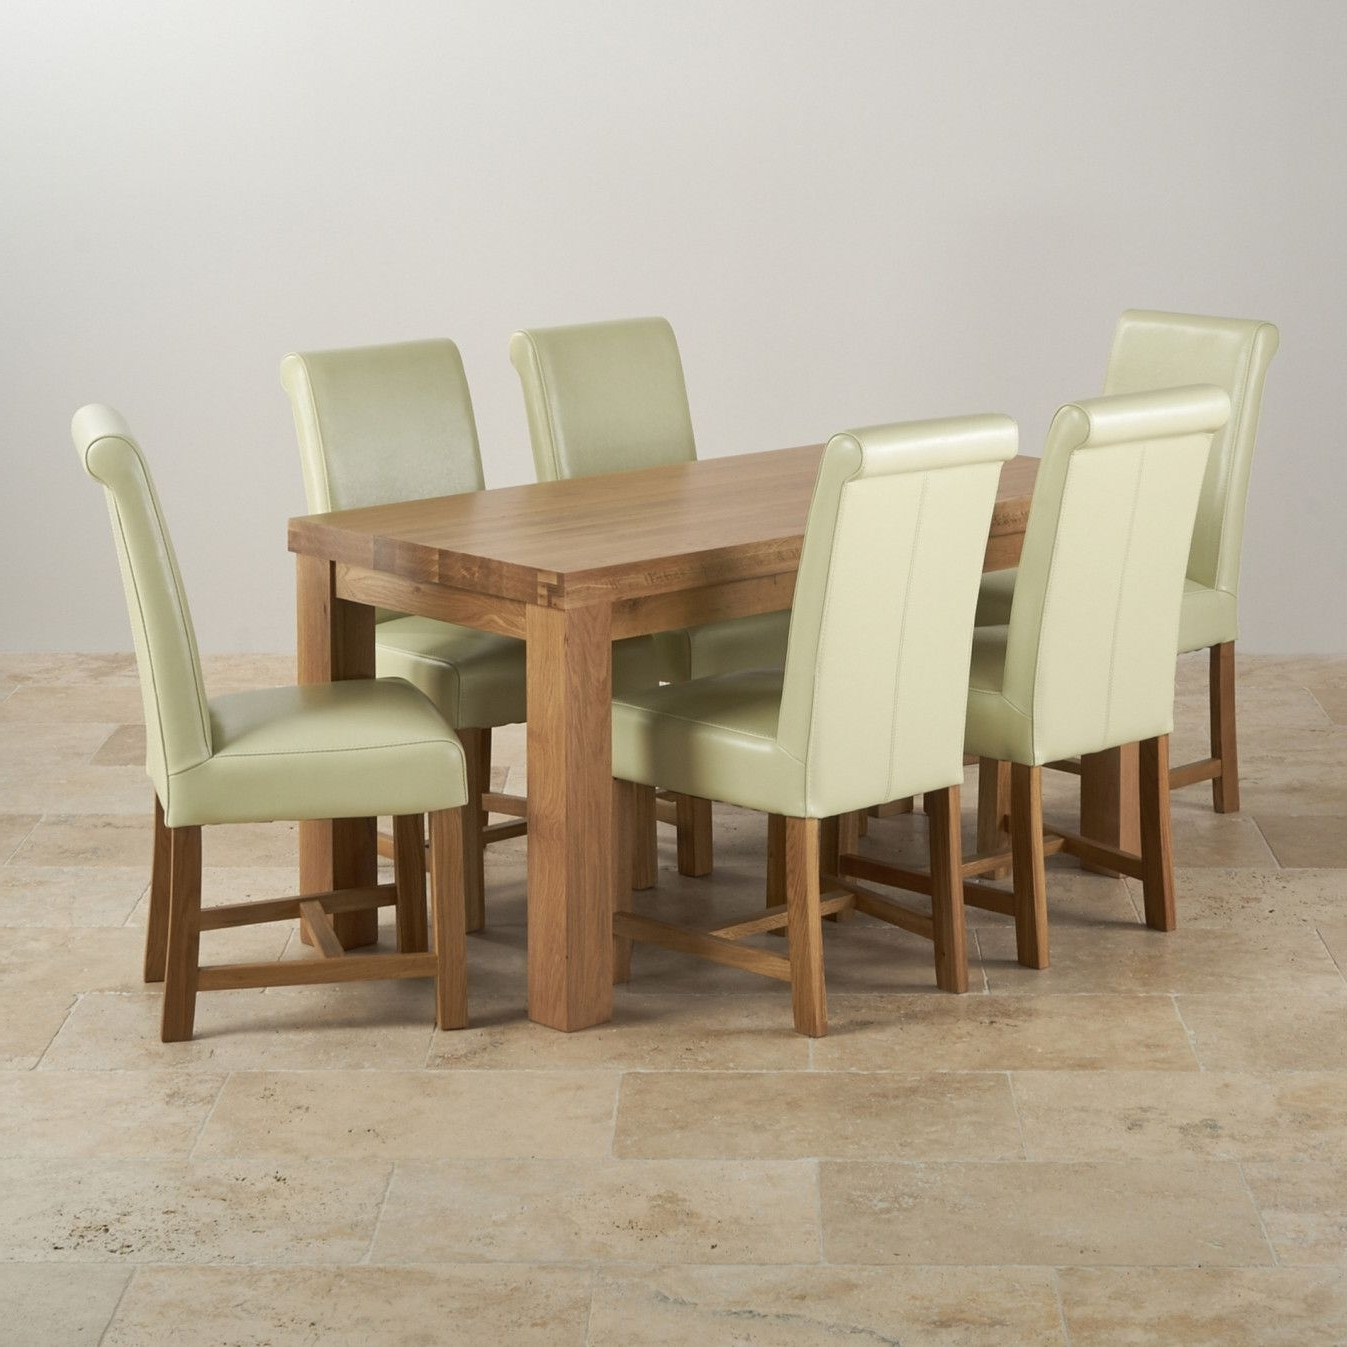 Oak Dining Tables And Chairs Regarding Favorite 50+ Solid Oak Dining Room Chairs – Modern Furniture Design Check (View 18 of 25)